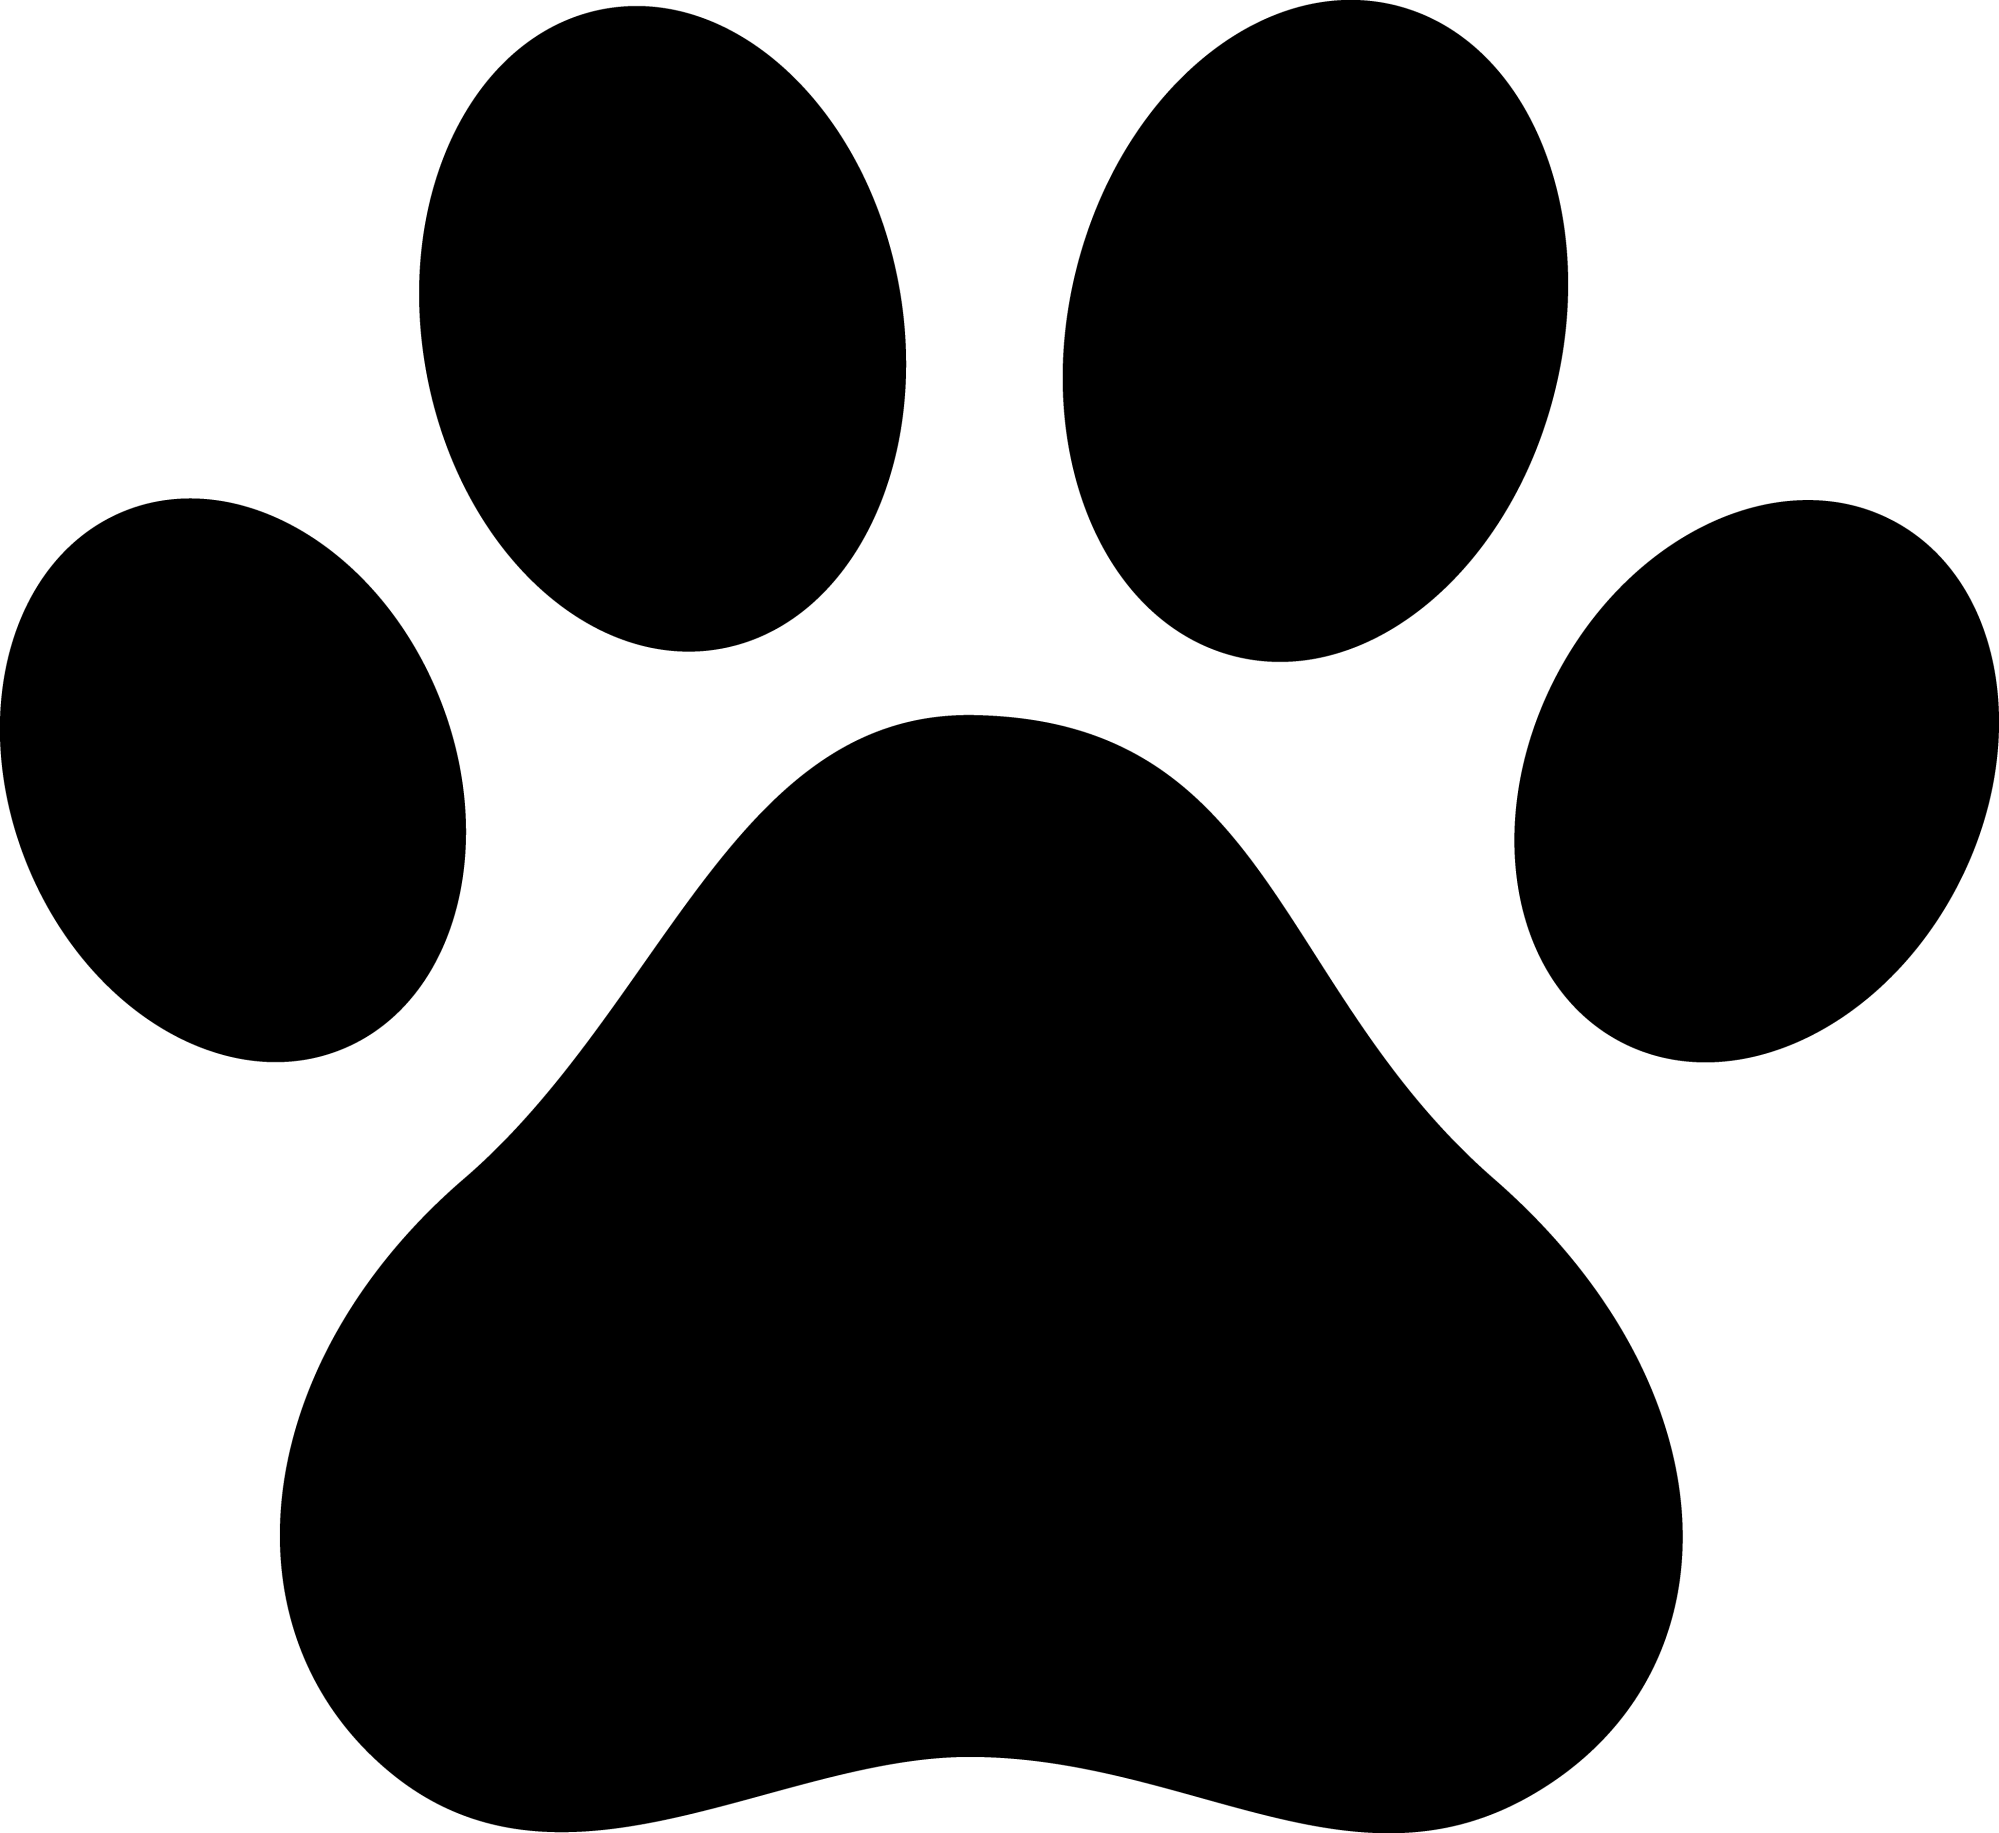 hight resolution of pawprint clipart garfield black paw print silhouette